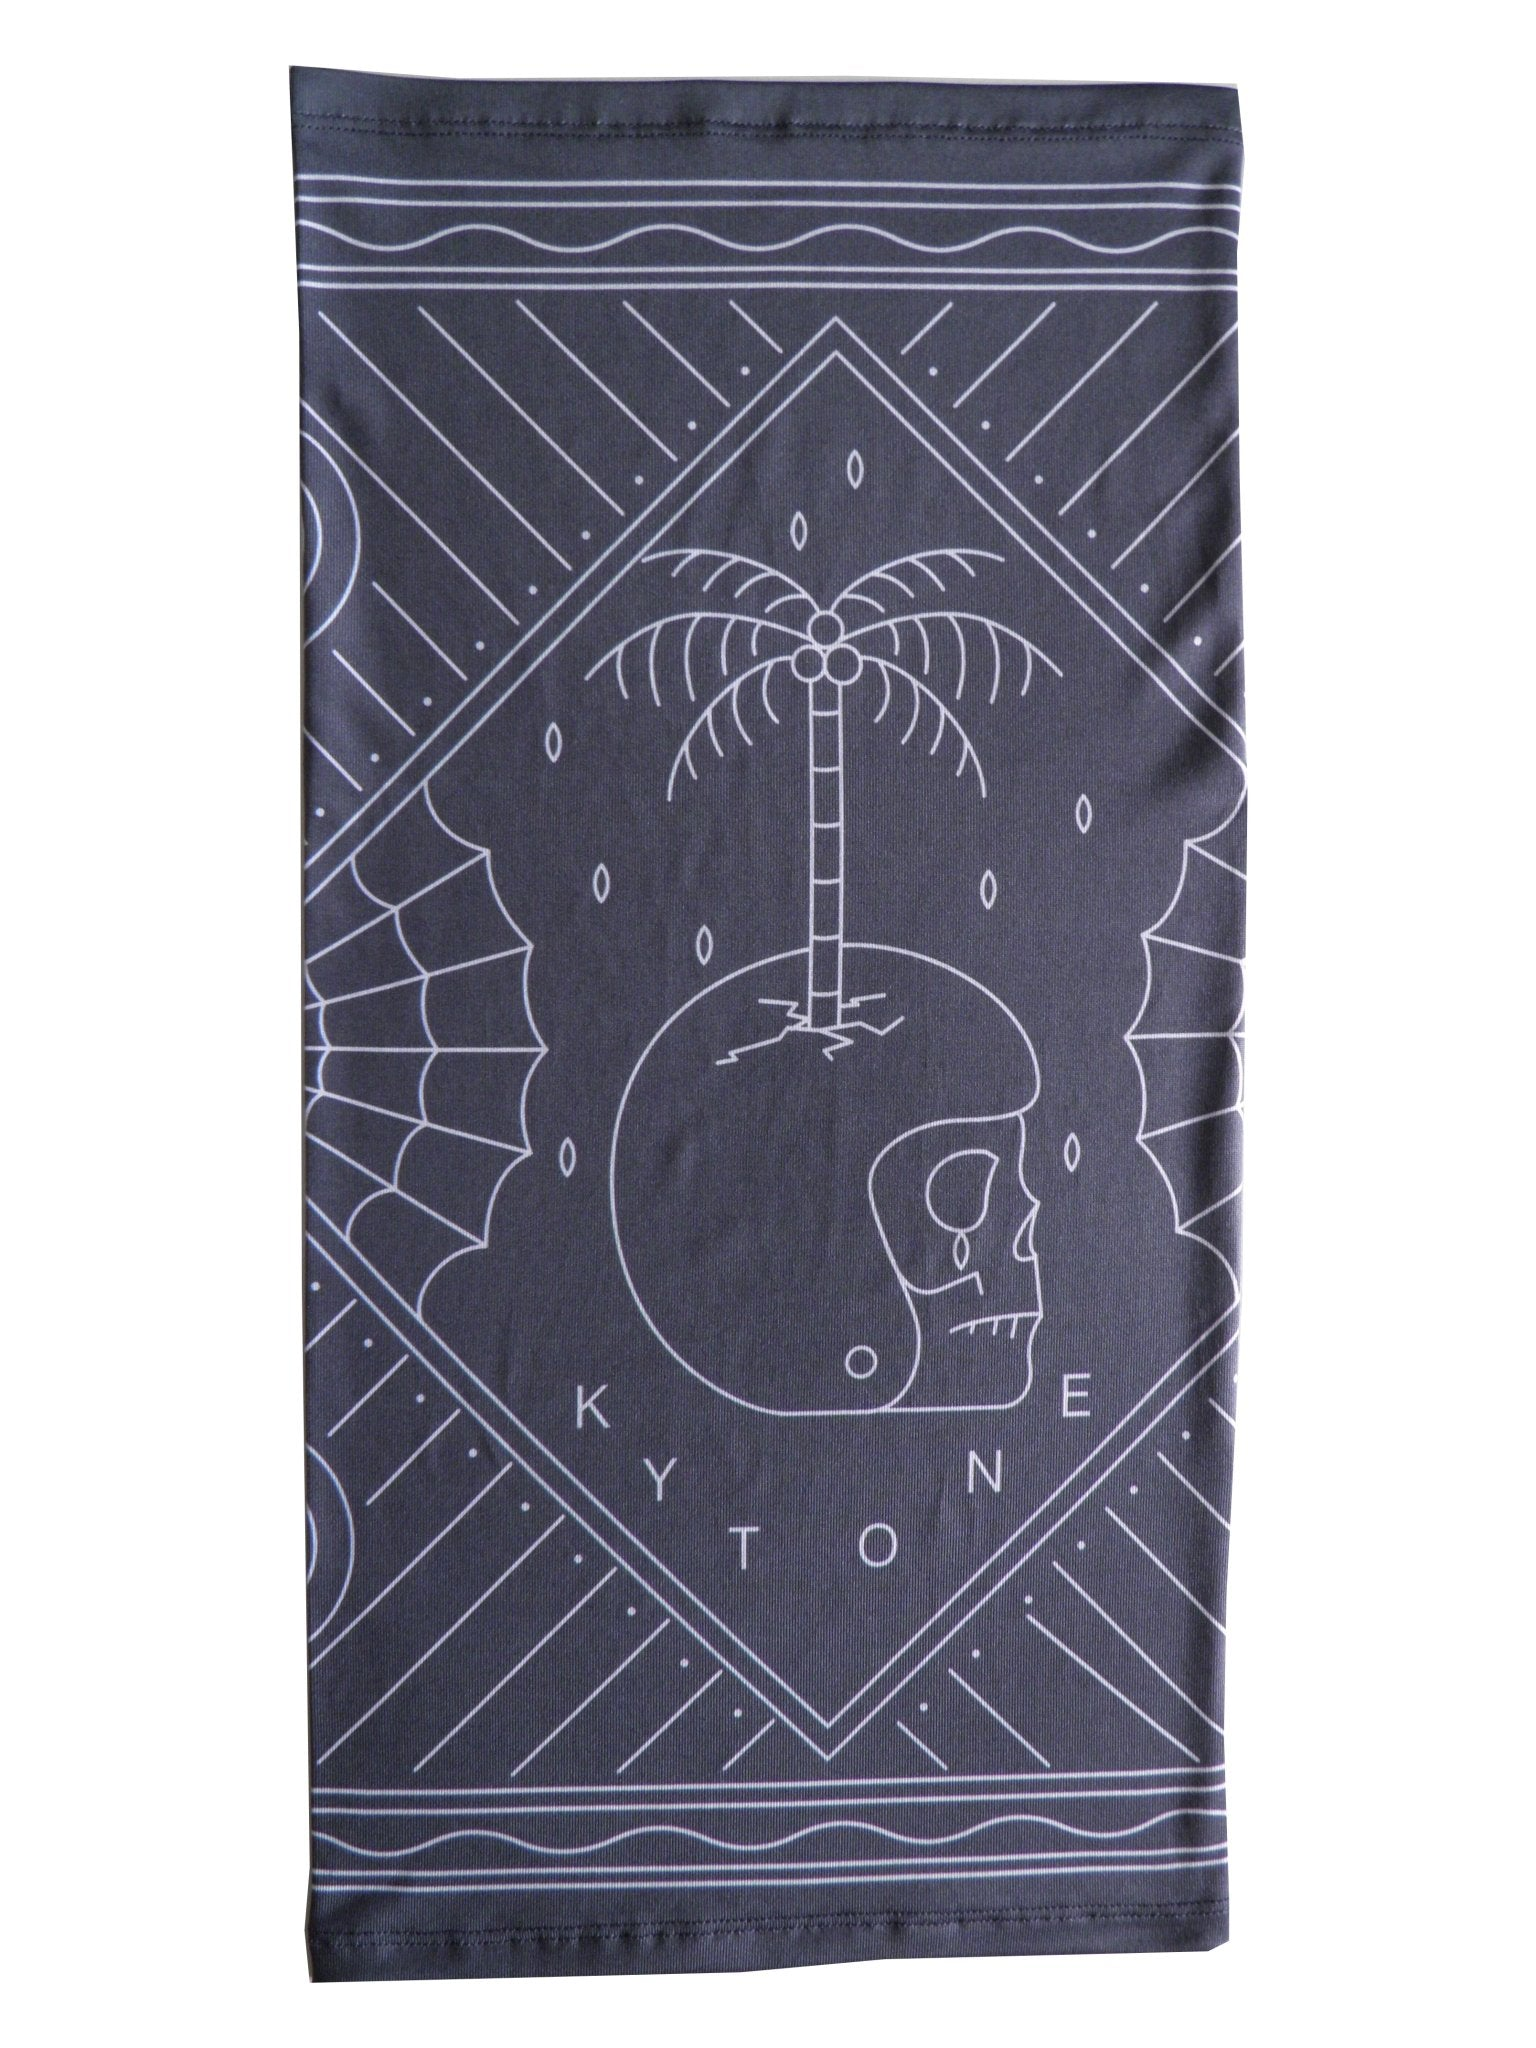 Kytone - Kytone Palm Tree Bandana Tube - Bandana's and Tubes - Salt Flats Clothing